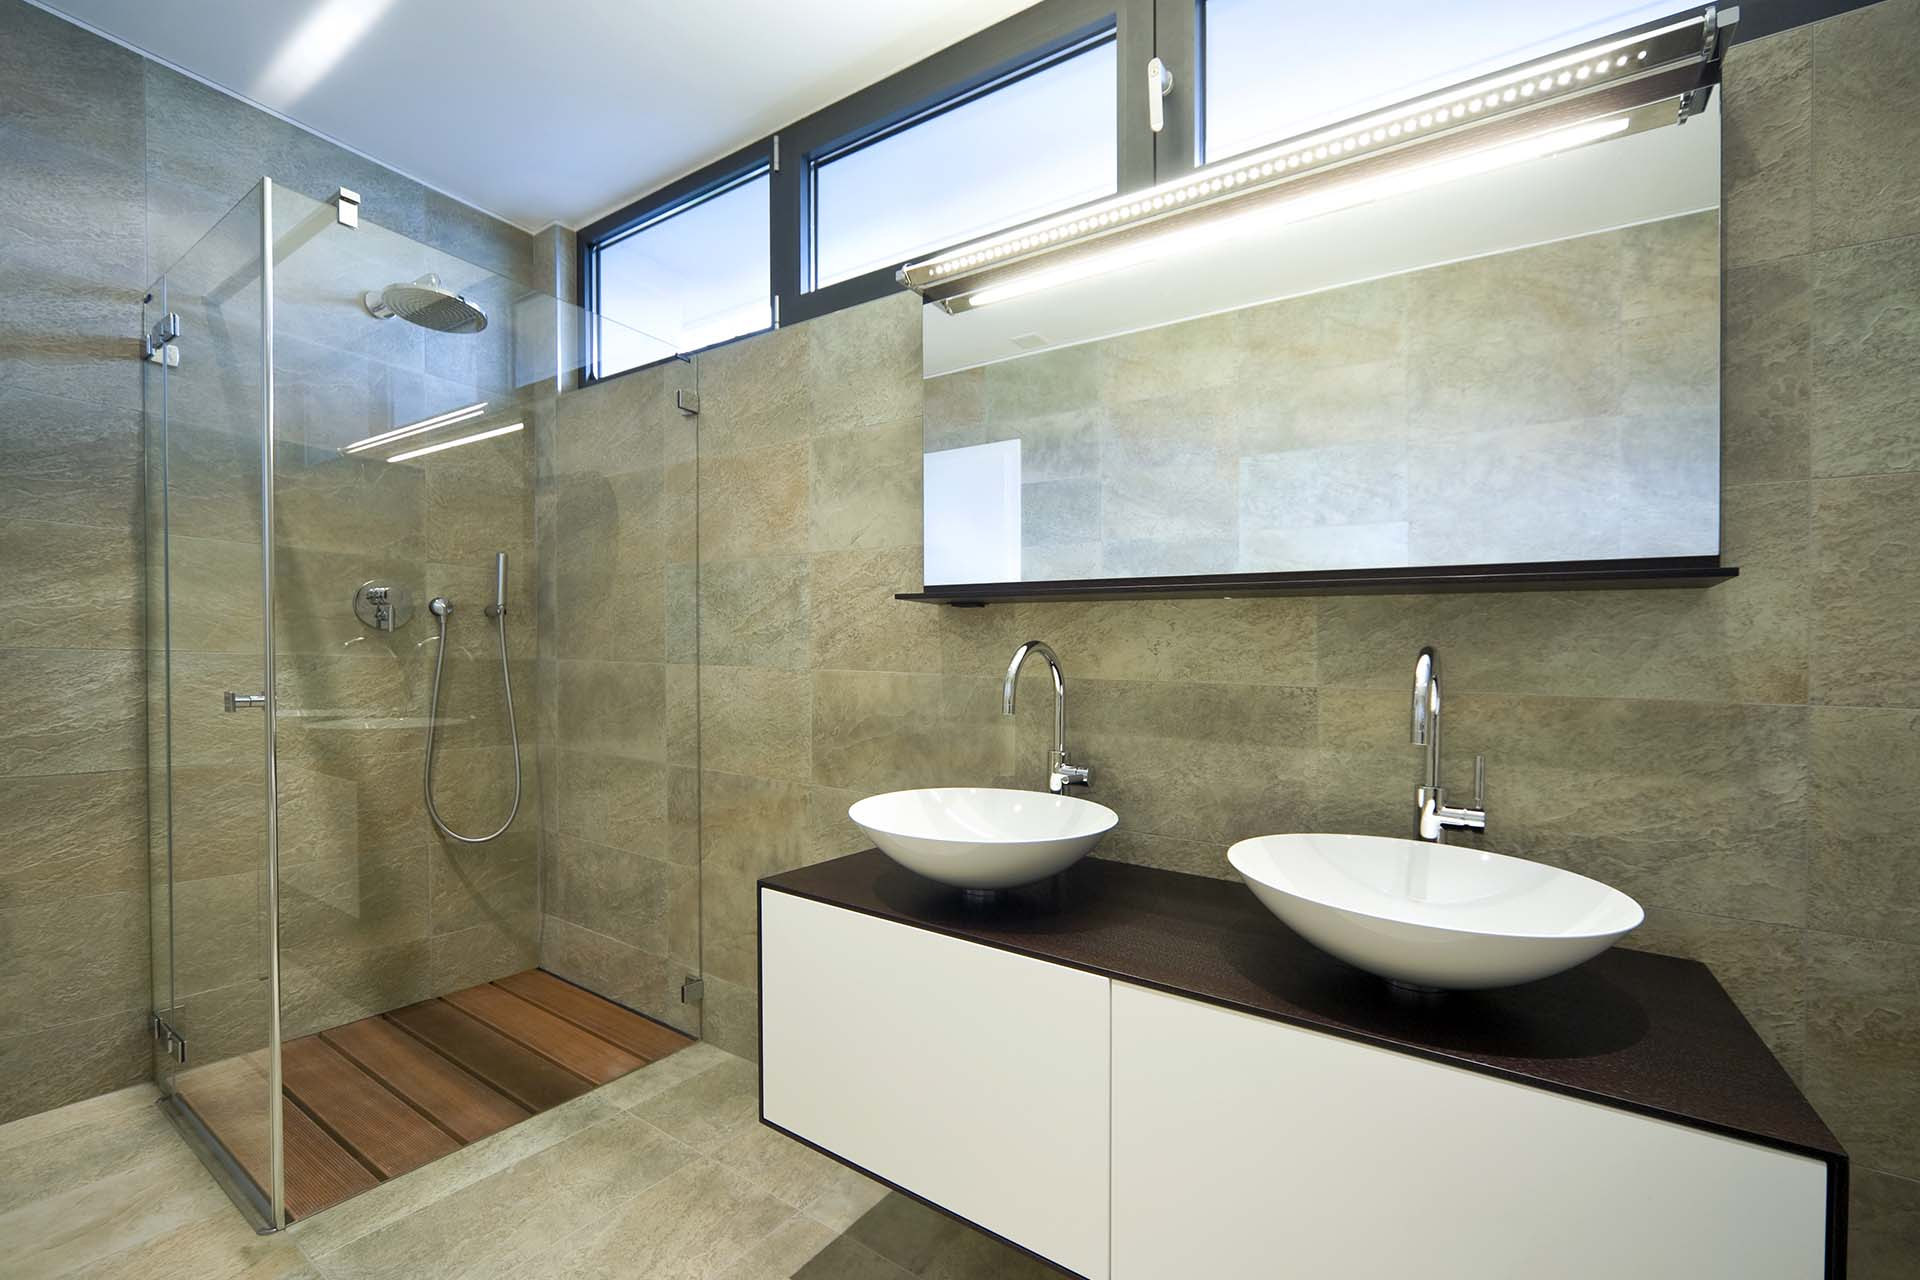 Custom World Bedrooms Bathroom Furniture -His and hers sinks on a modern made to measure cabinet